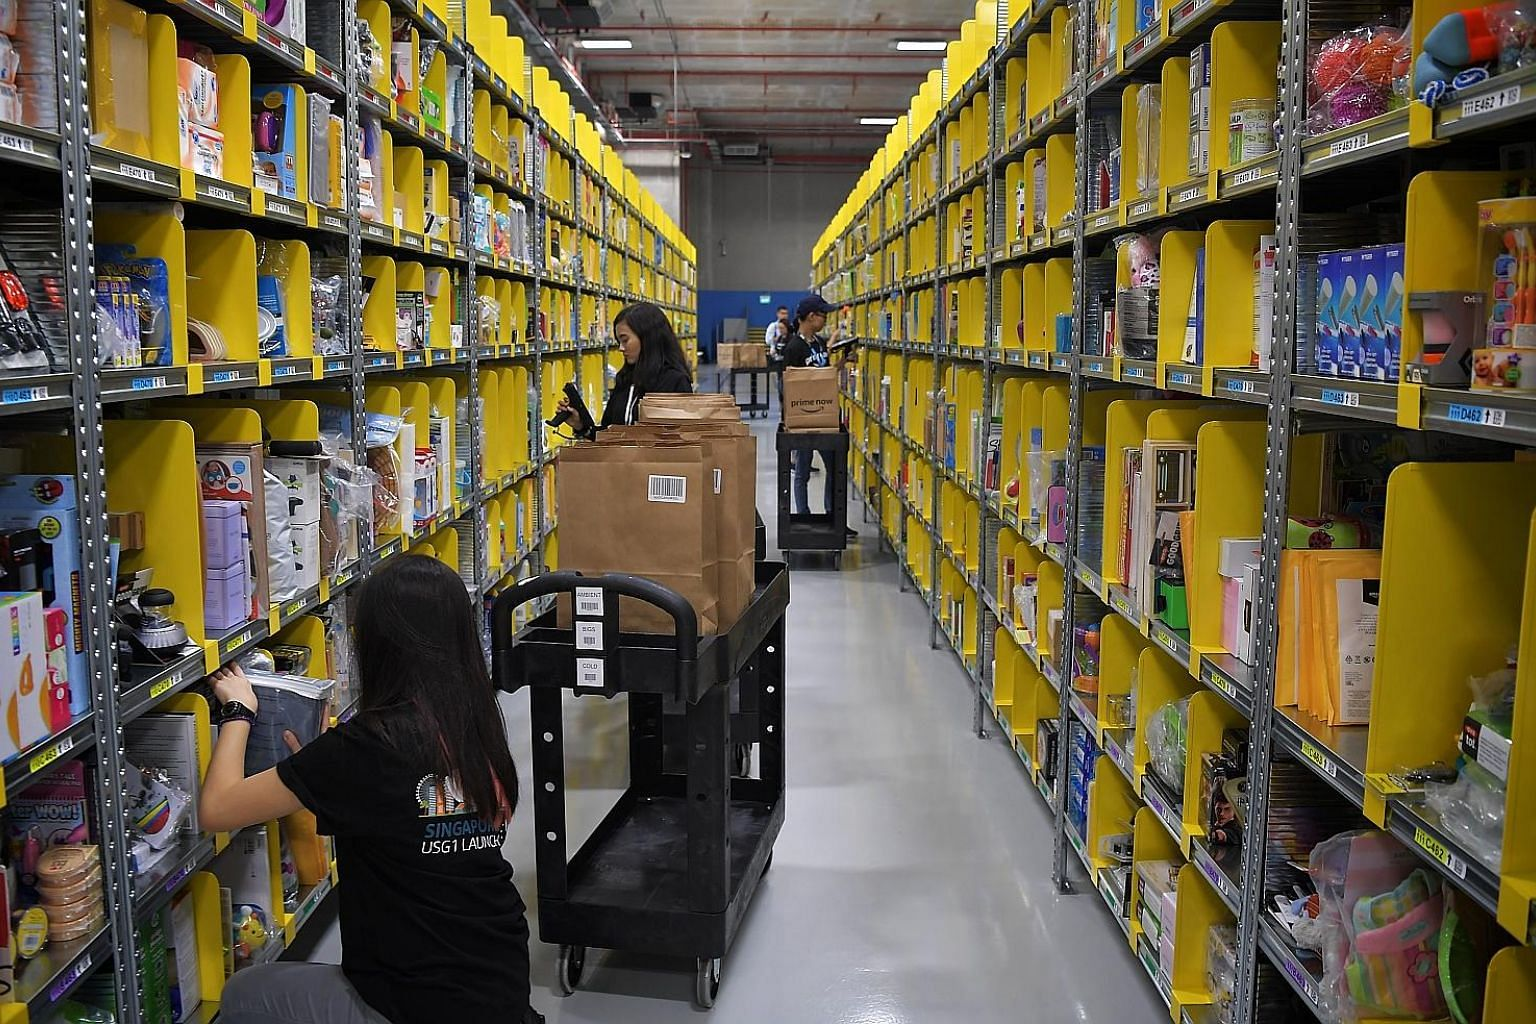 Staff packing orders yesterday at Amazon's Prime Now Fulfilment Centre in Singapore, which is now its largest in the world. Through the Prime Now app, customers can get products delivered to them in two hours.